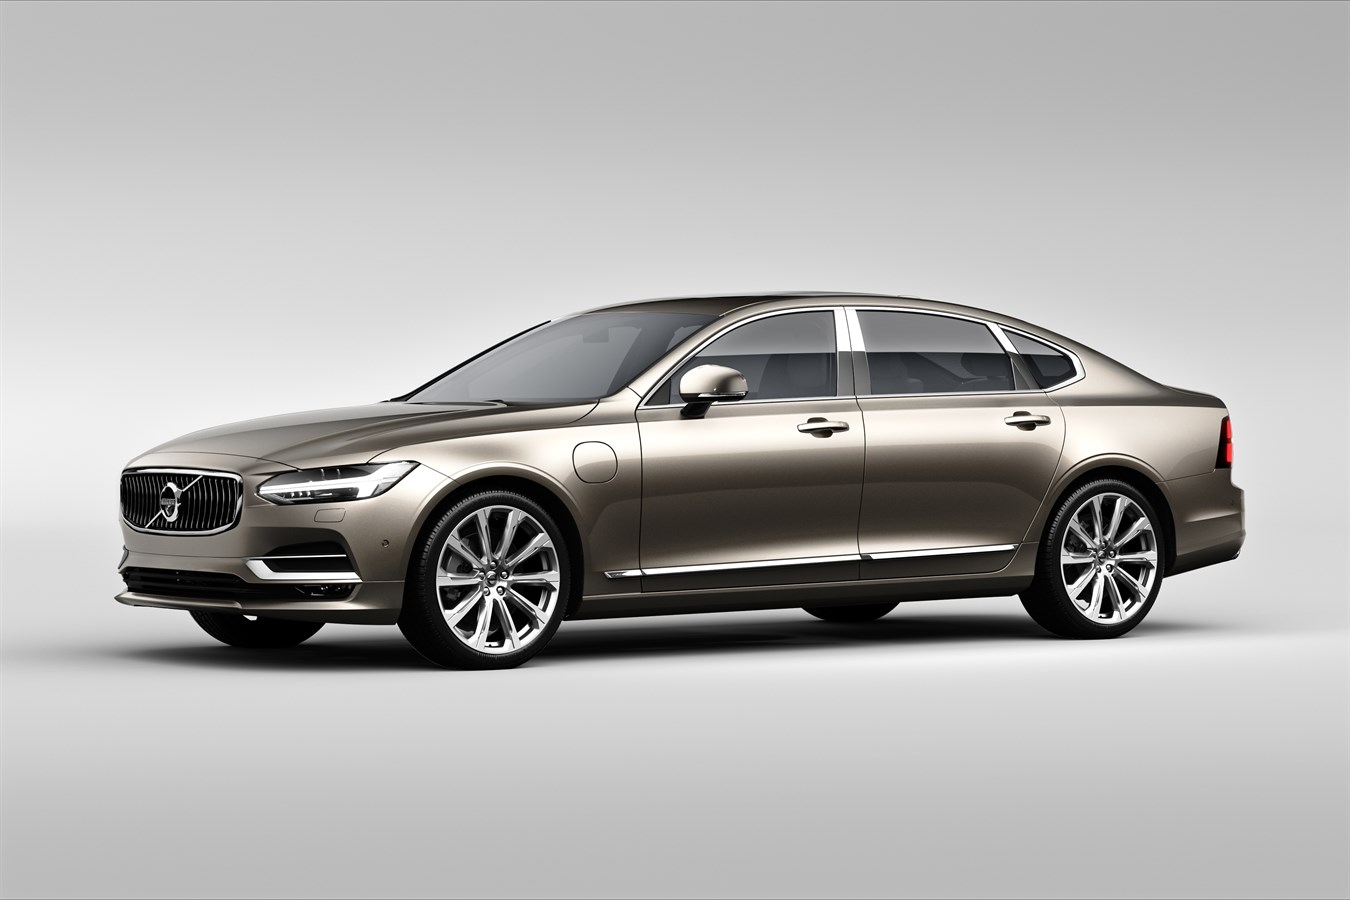 Volvo Cars expands production in China and unveils new China strategy - Volvo Car Group Global ...